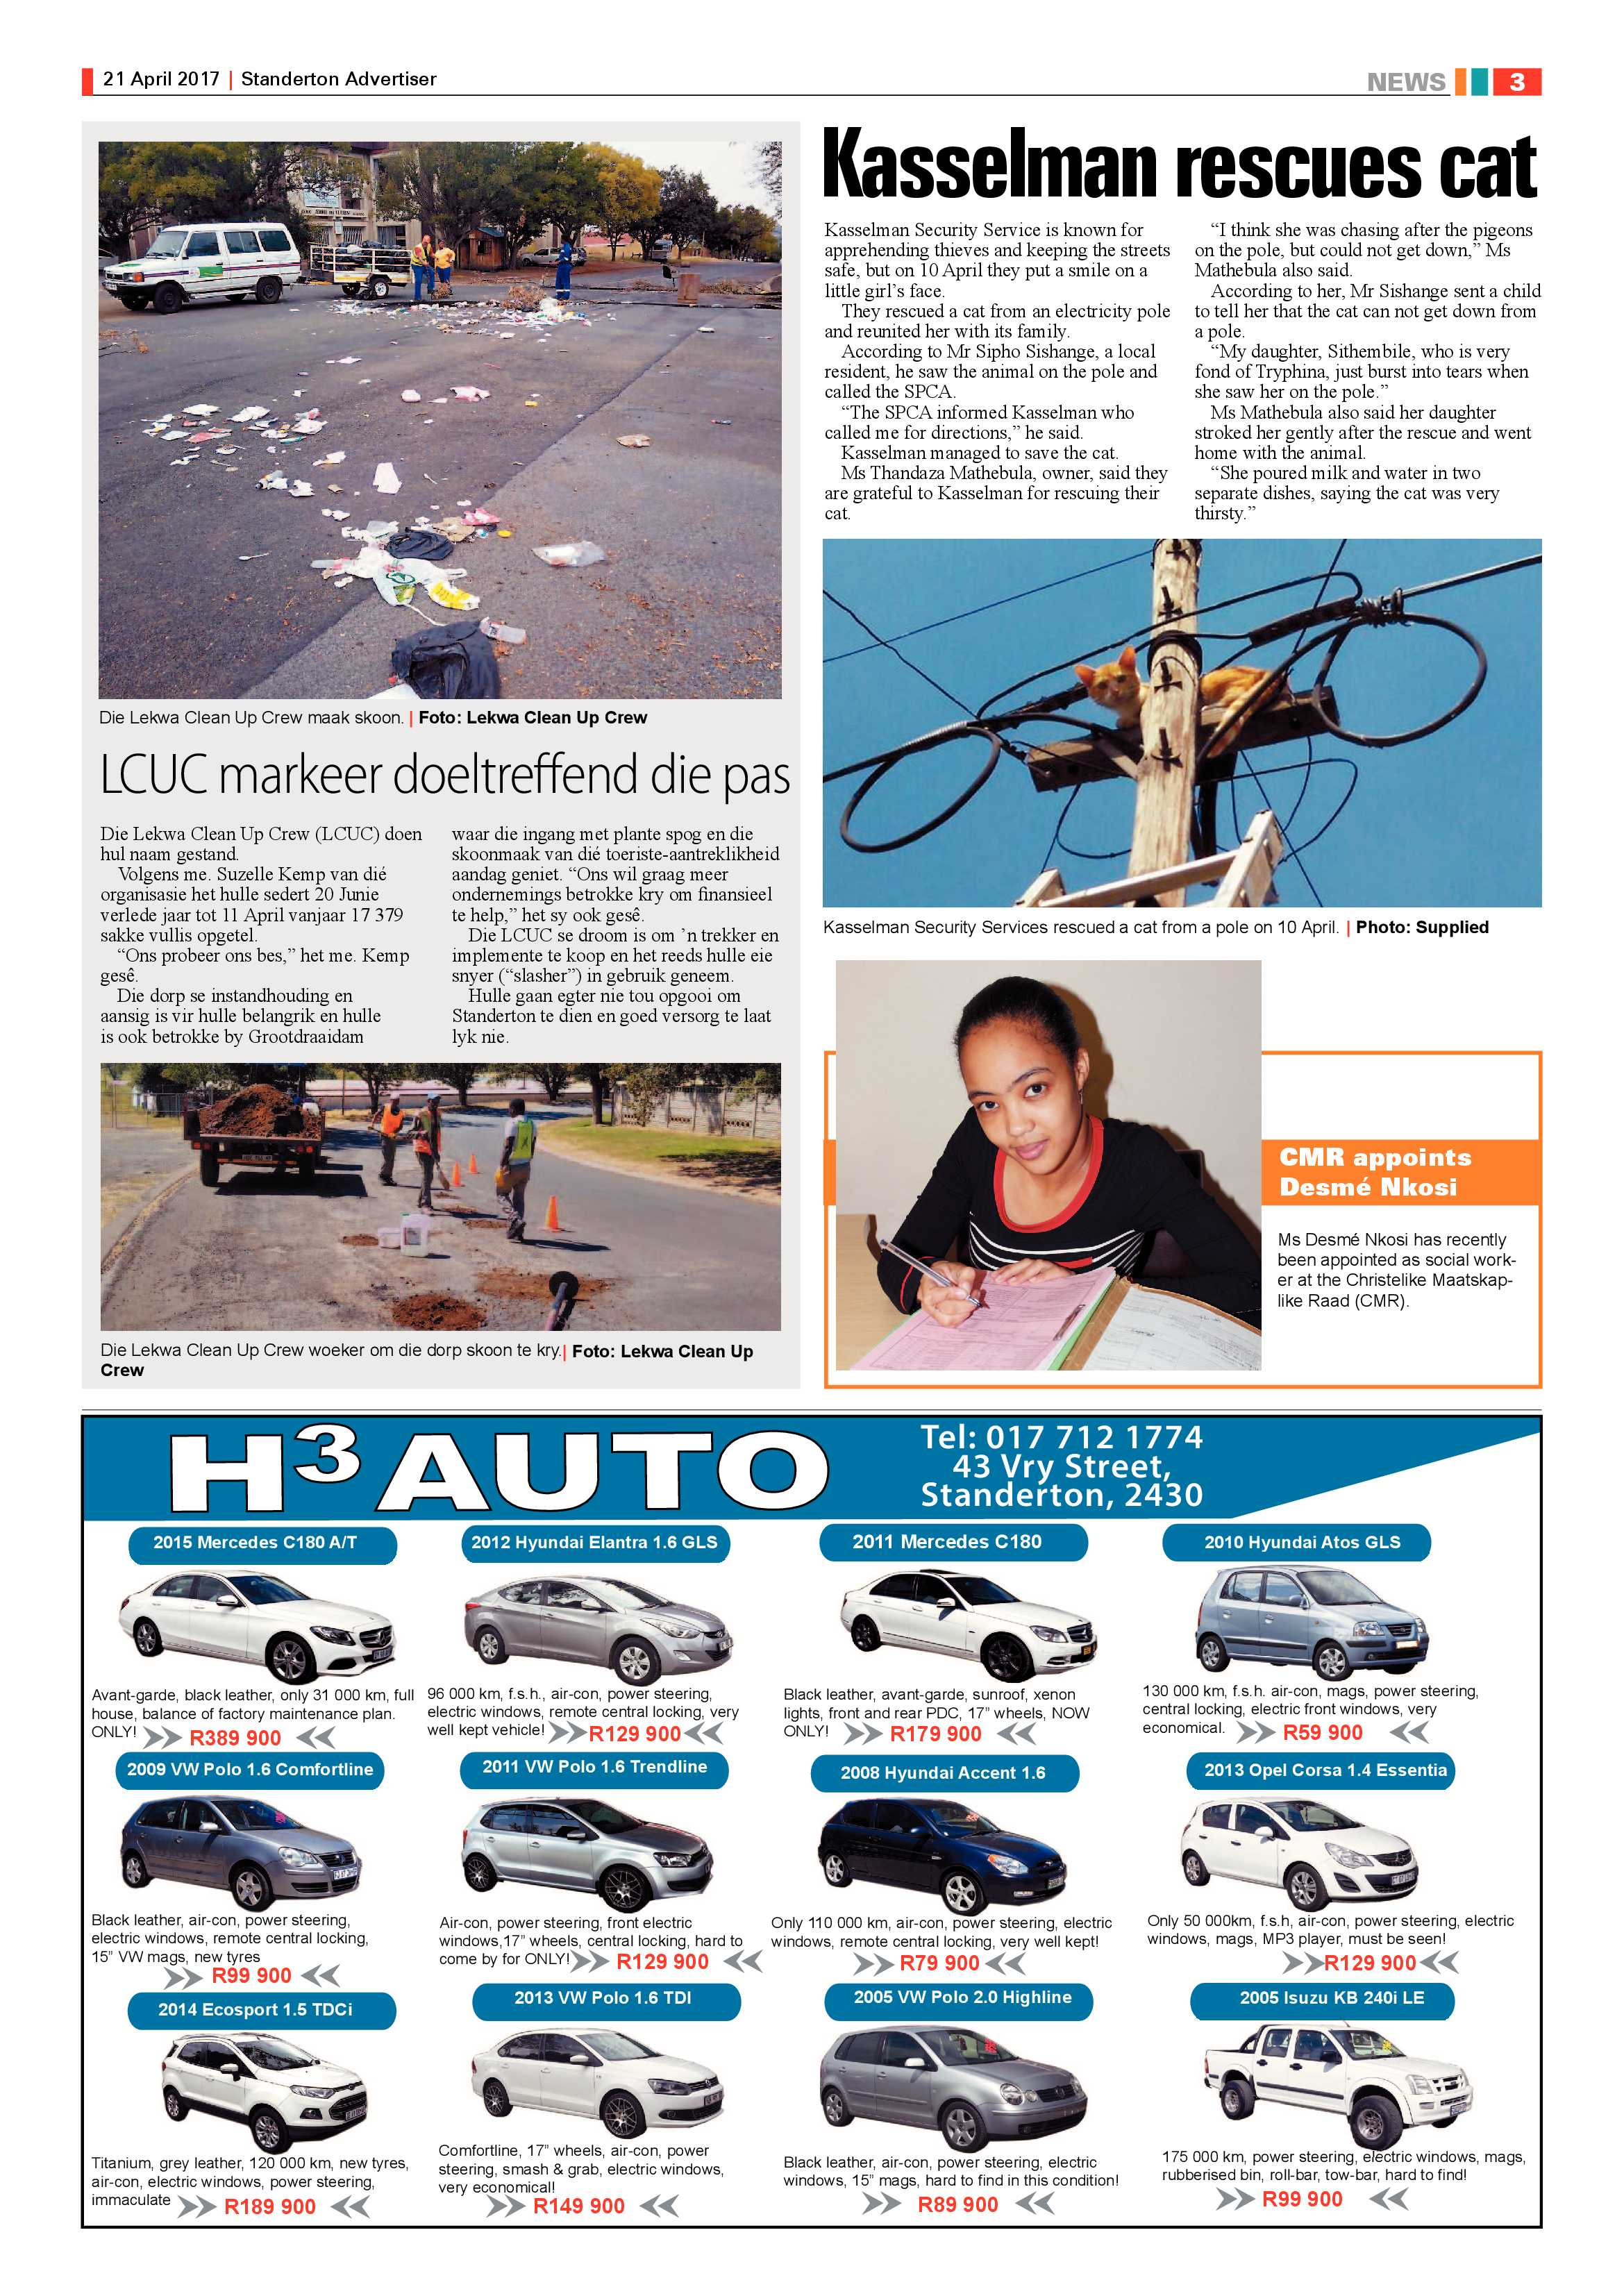 standerton-advertiser-21-april-2017-epapers-page-3